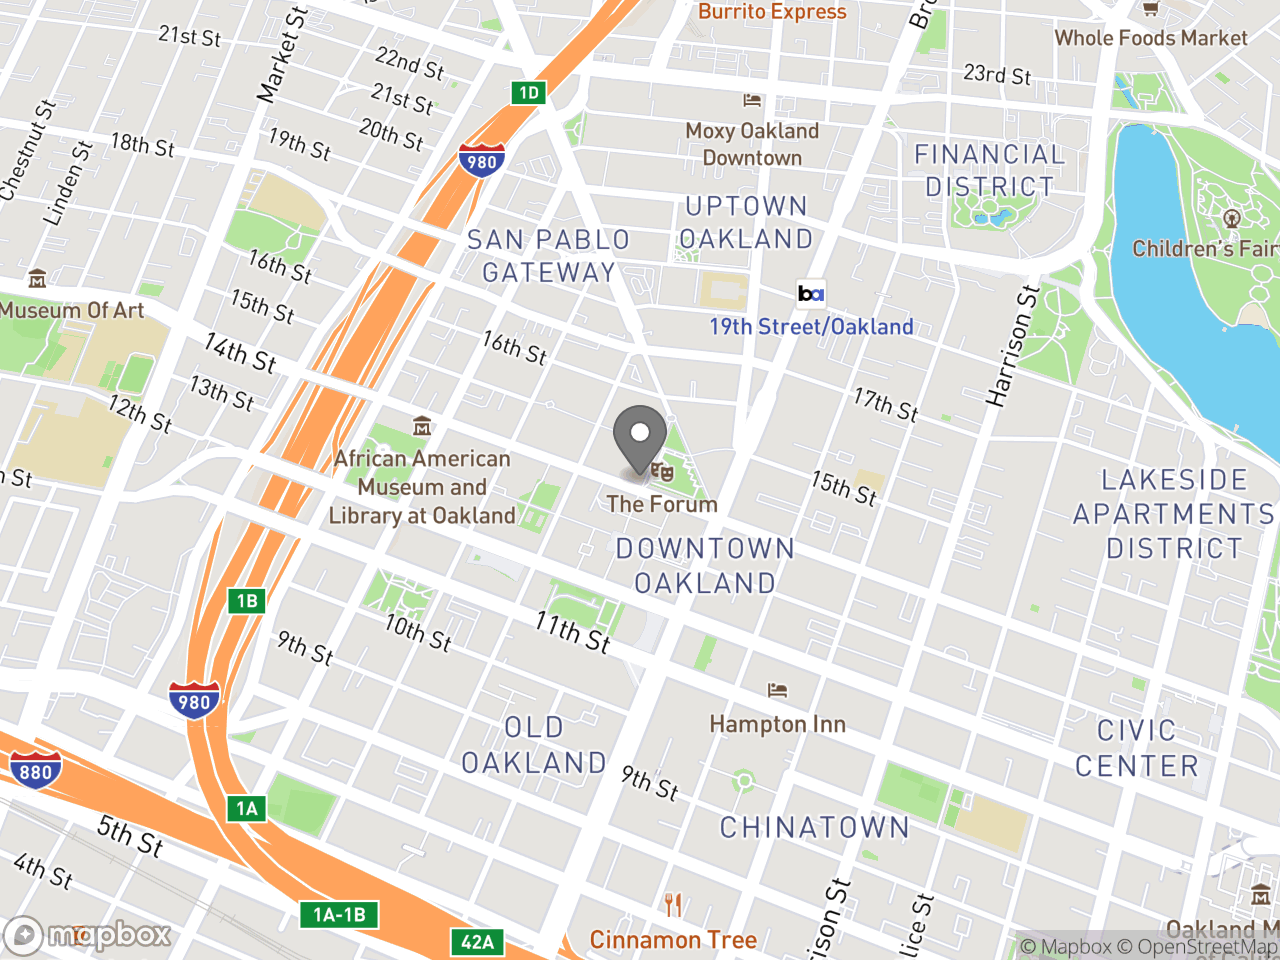 Map location for Mayor's Commission on Persons with Disabilities, February 25, 2019, located at 1 Frank H Ogawa Plaza in Oakland, CA 94612